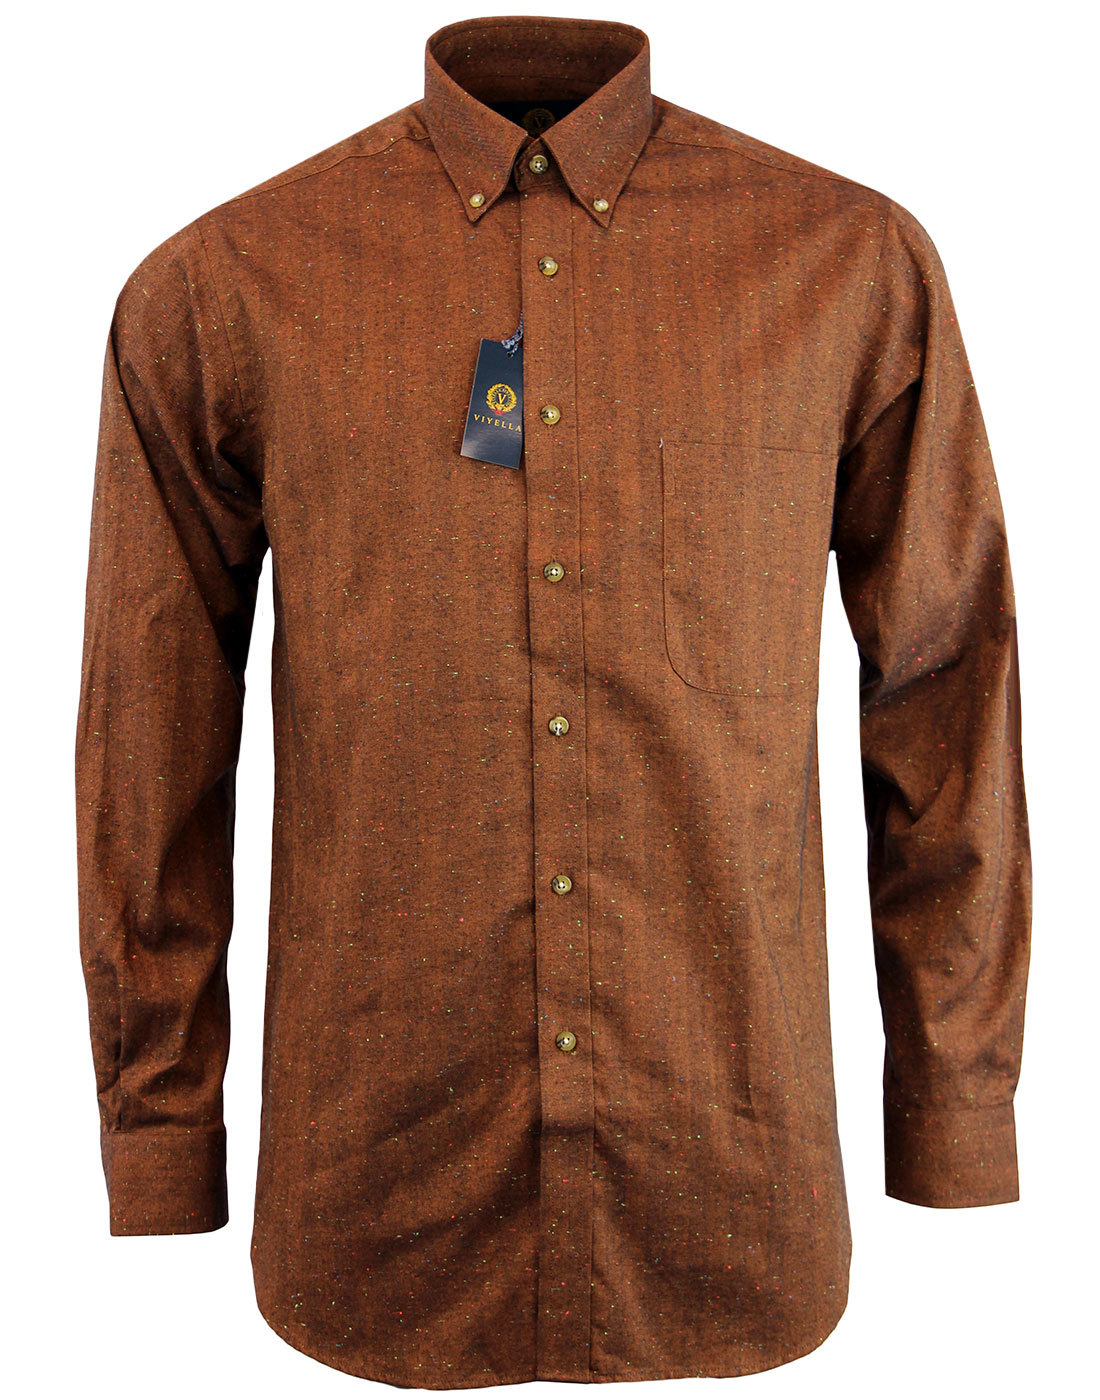 VIYELLA Retro Herringbone Donegal Nep Shirt (B)